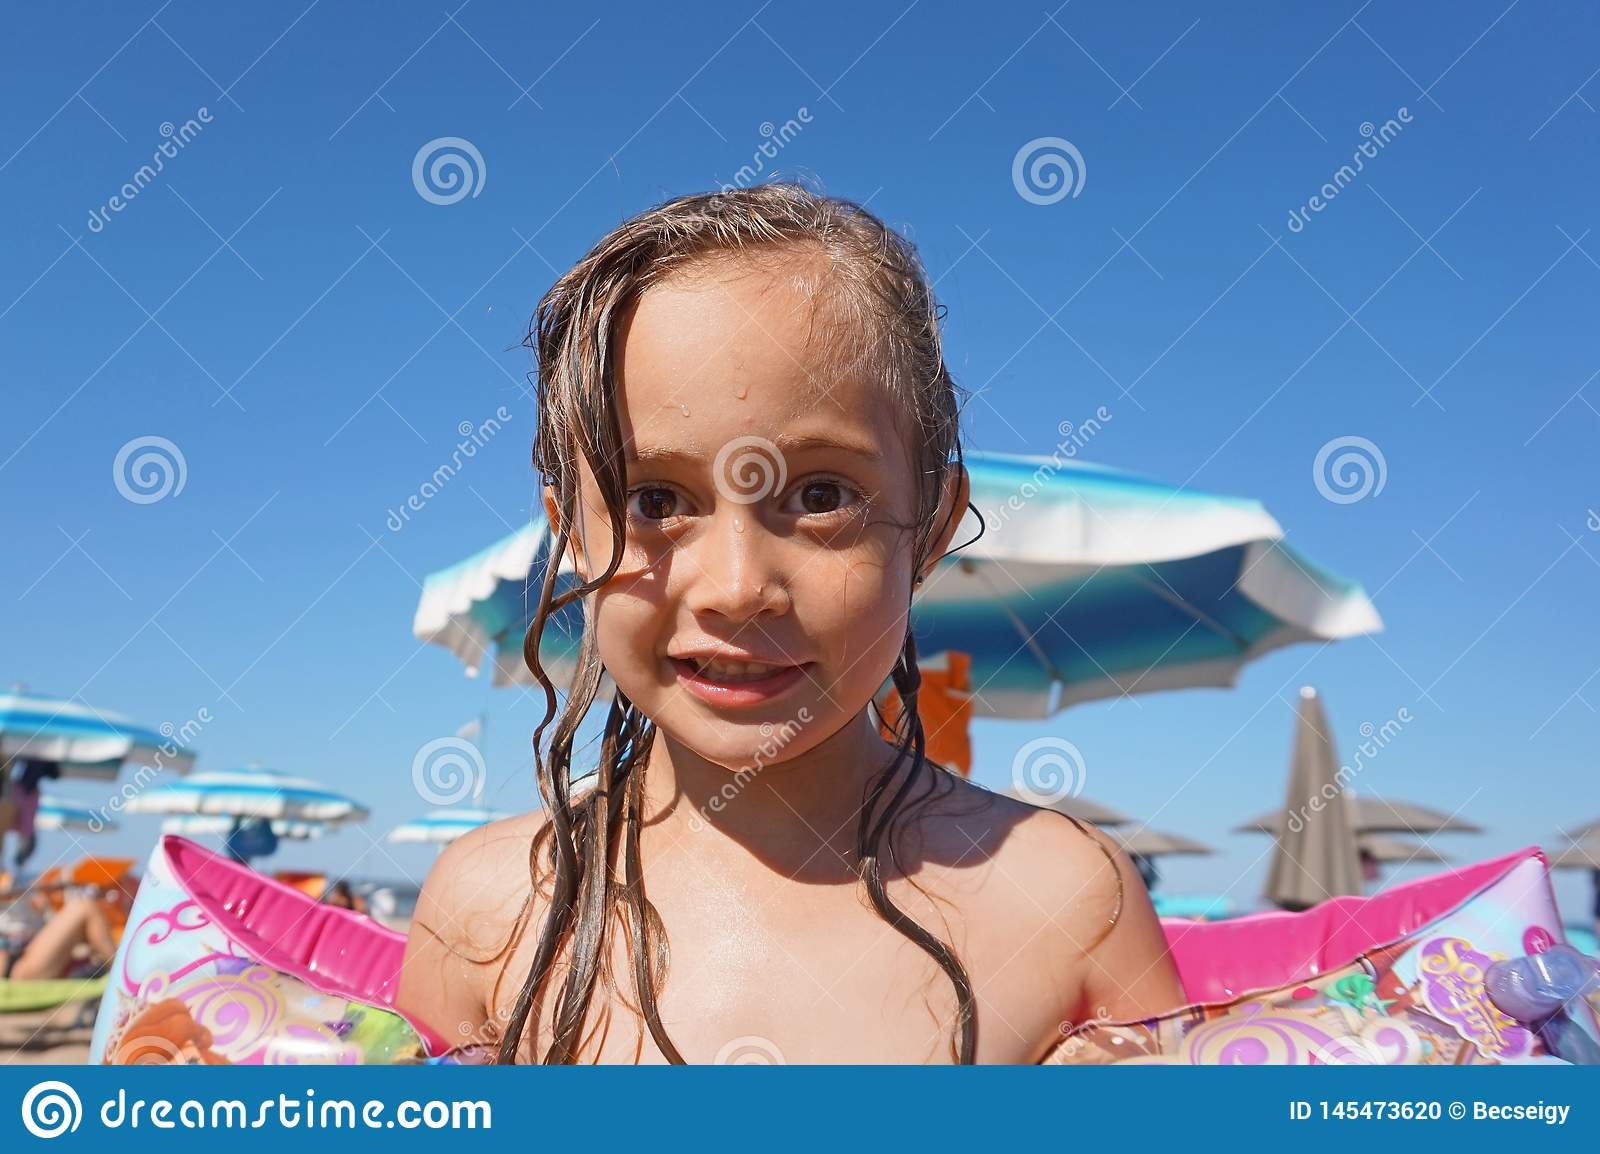 Little girl wearing arm floats on the beach